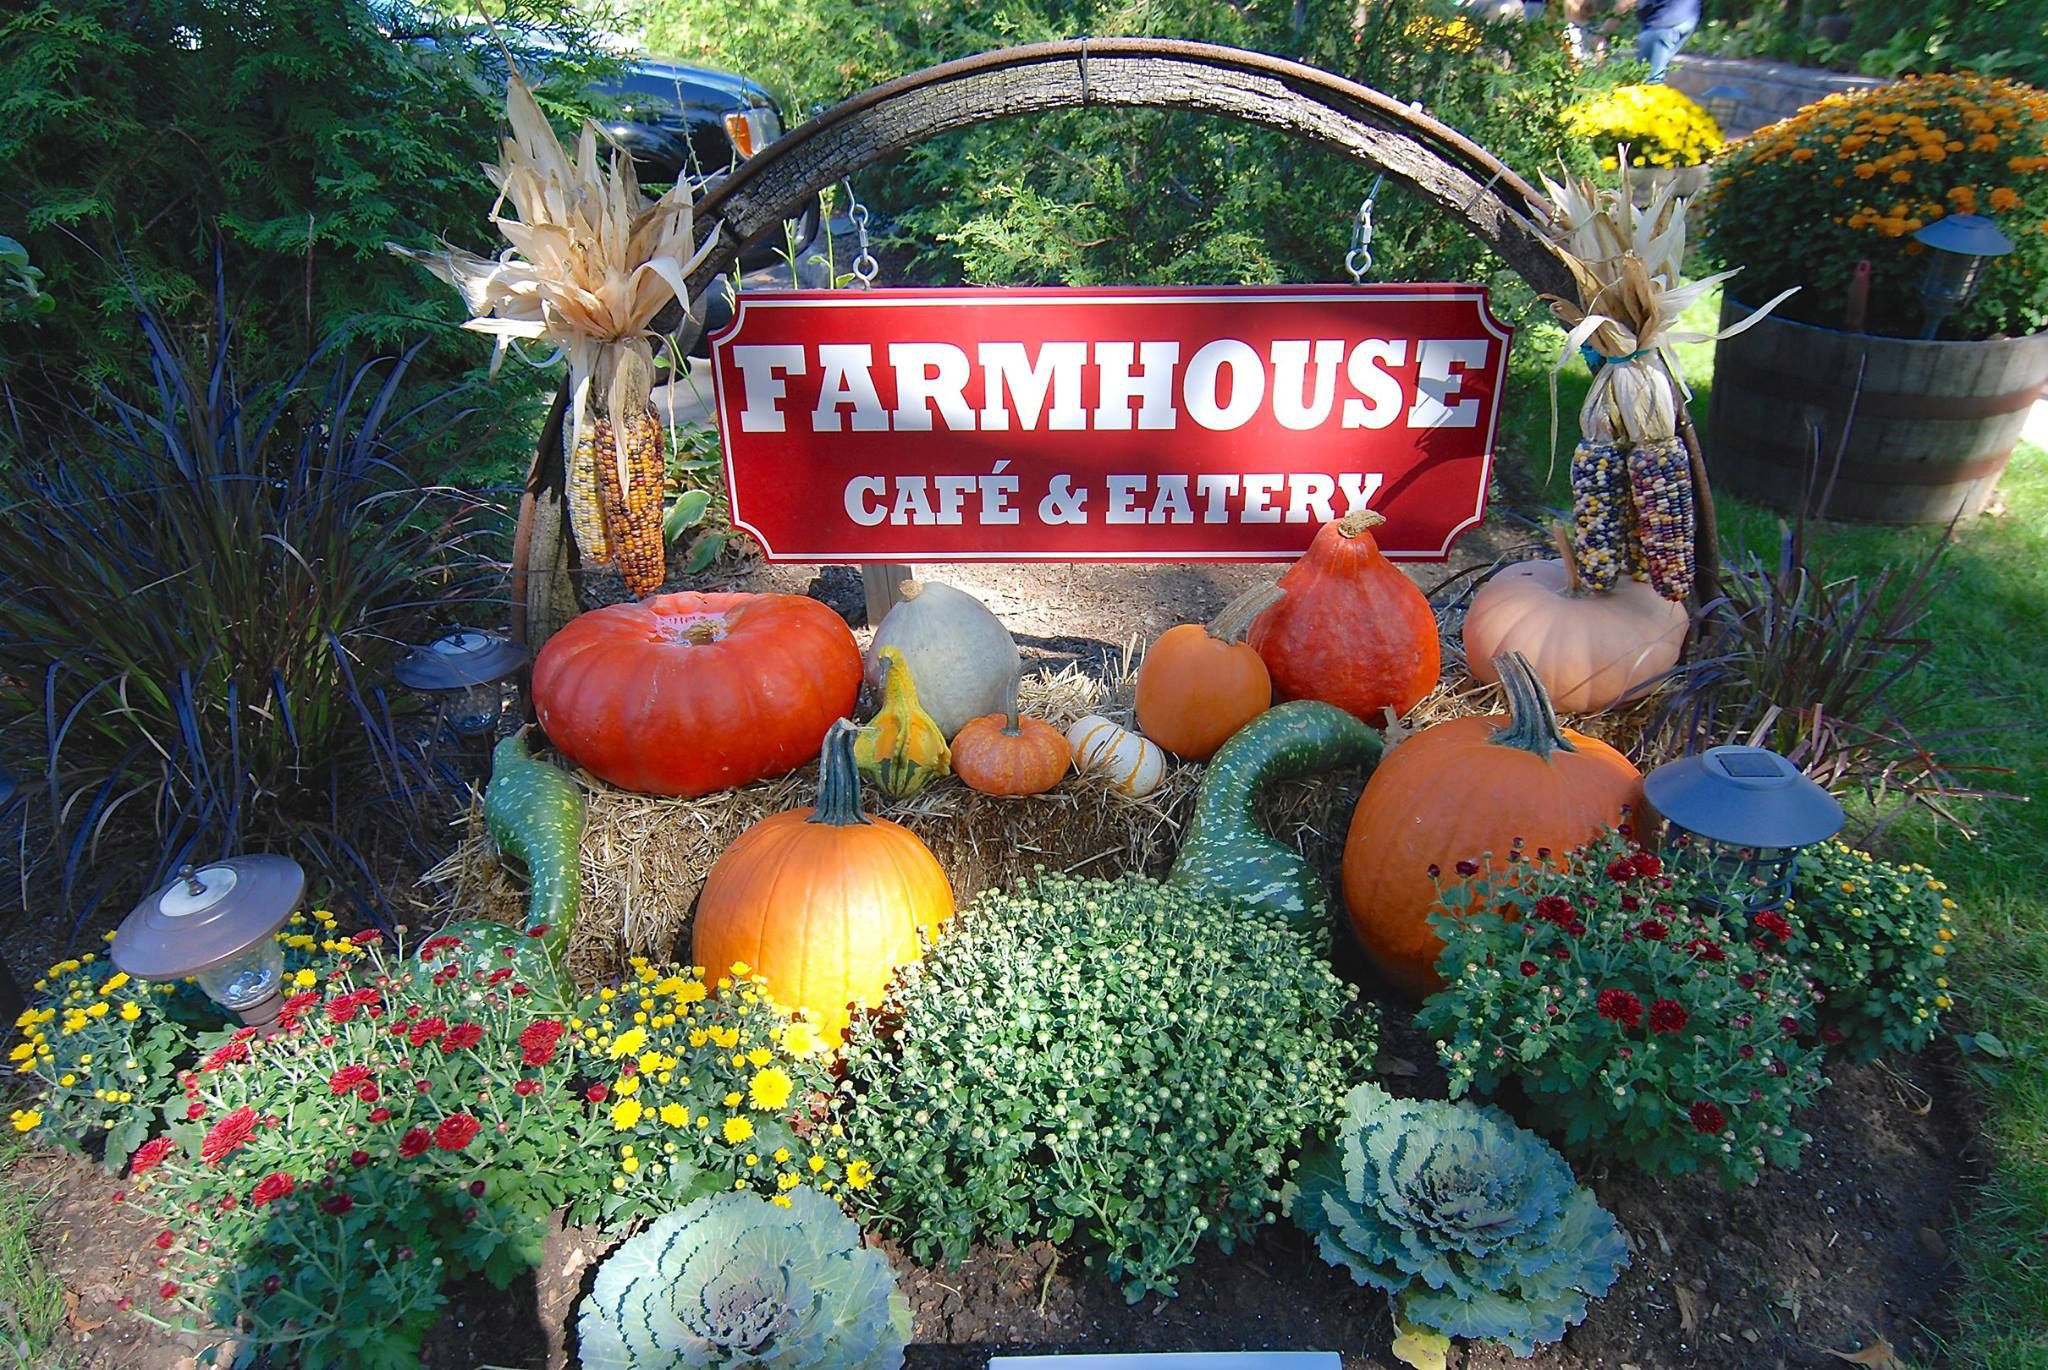 Choose the Farmhouse Cafe & Eatery for all your breakfast